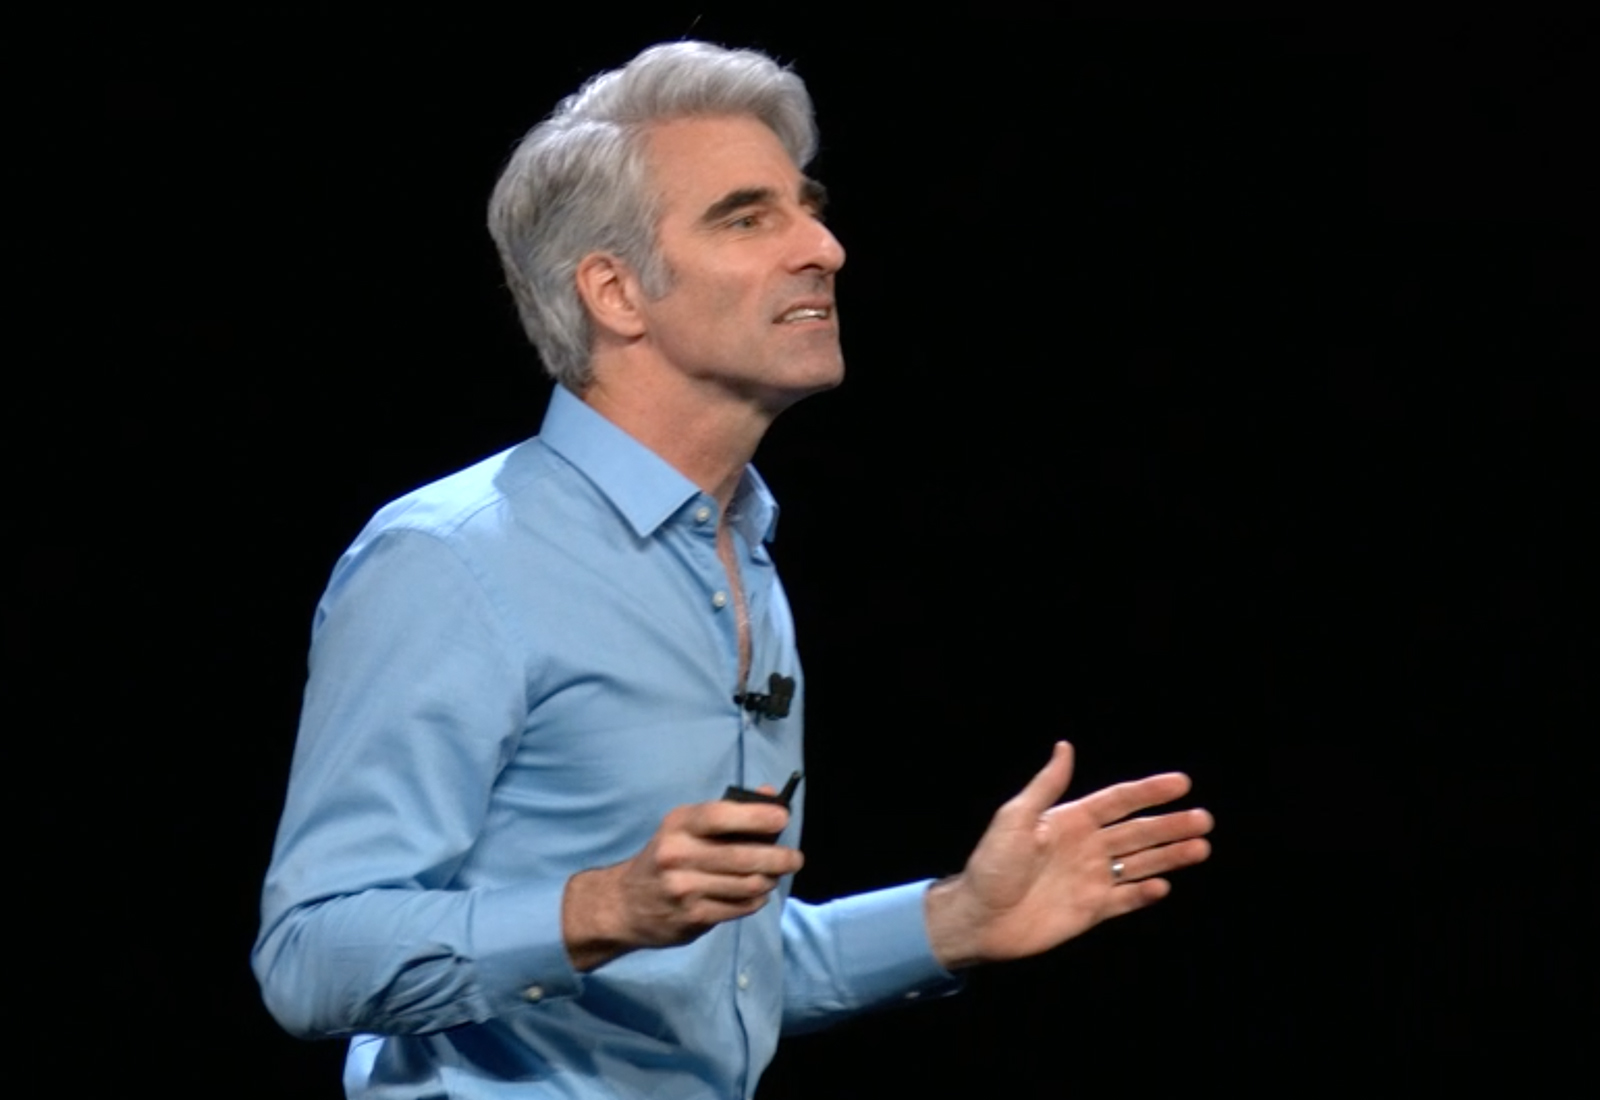 Apple's Software Engineering VP offers advice to up-and-coming coders